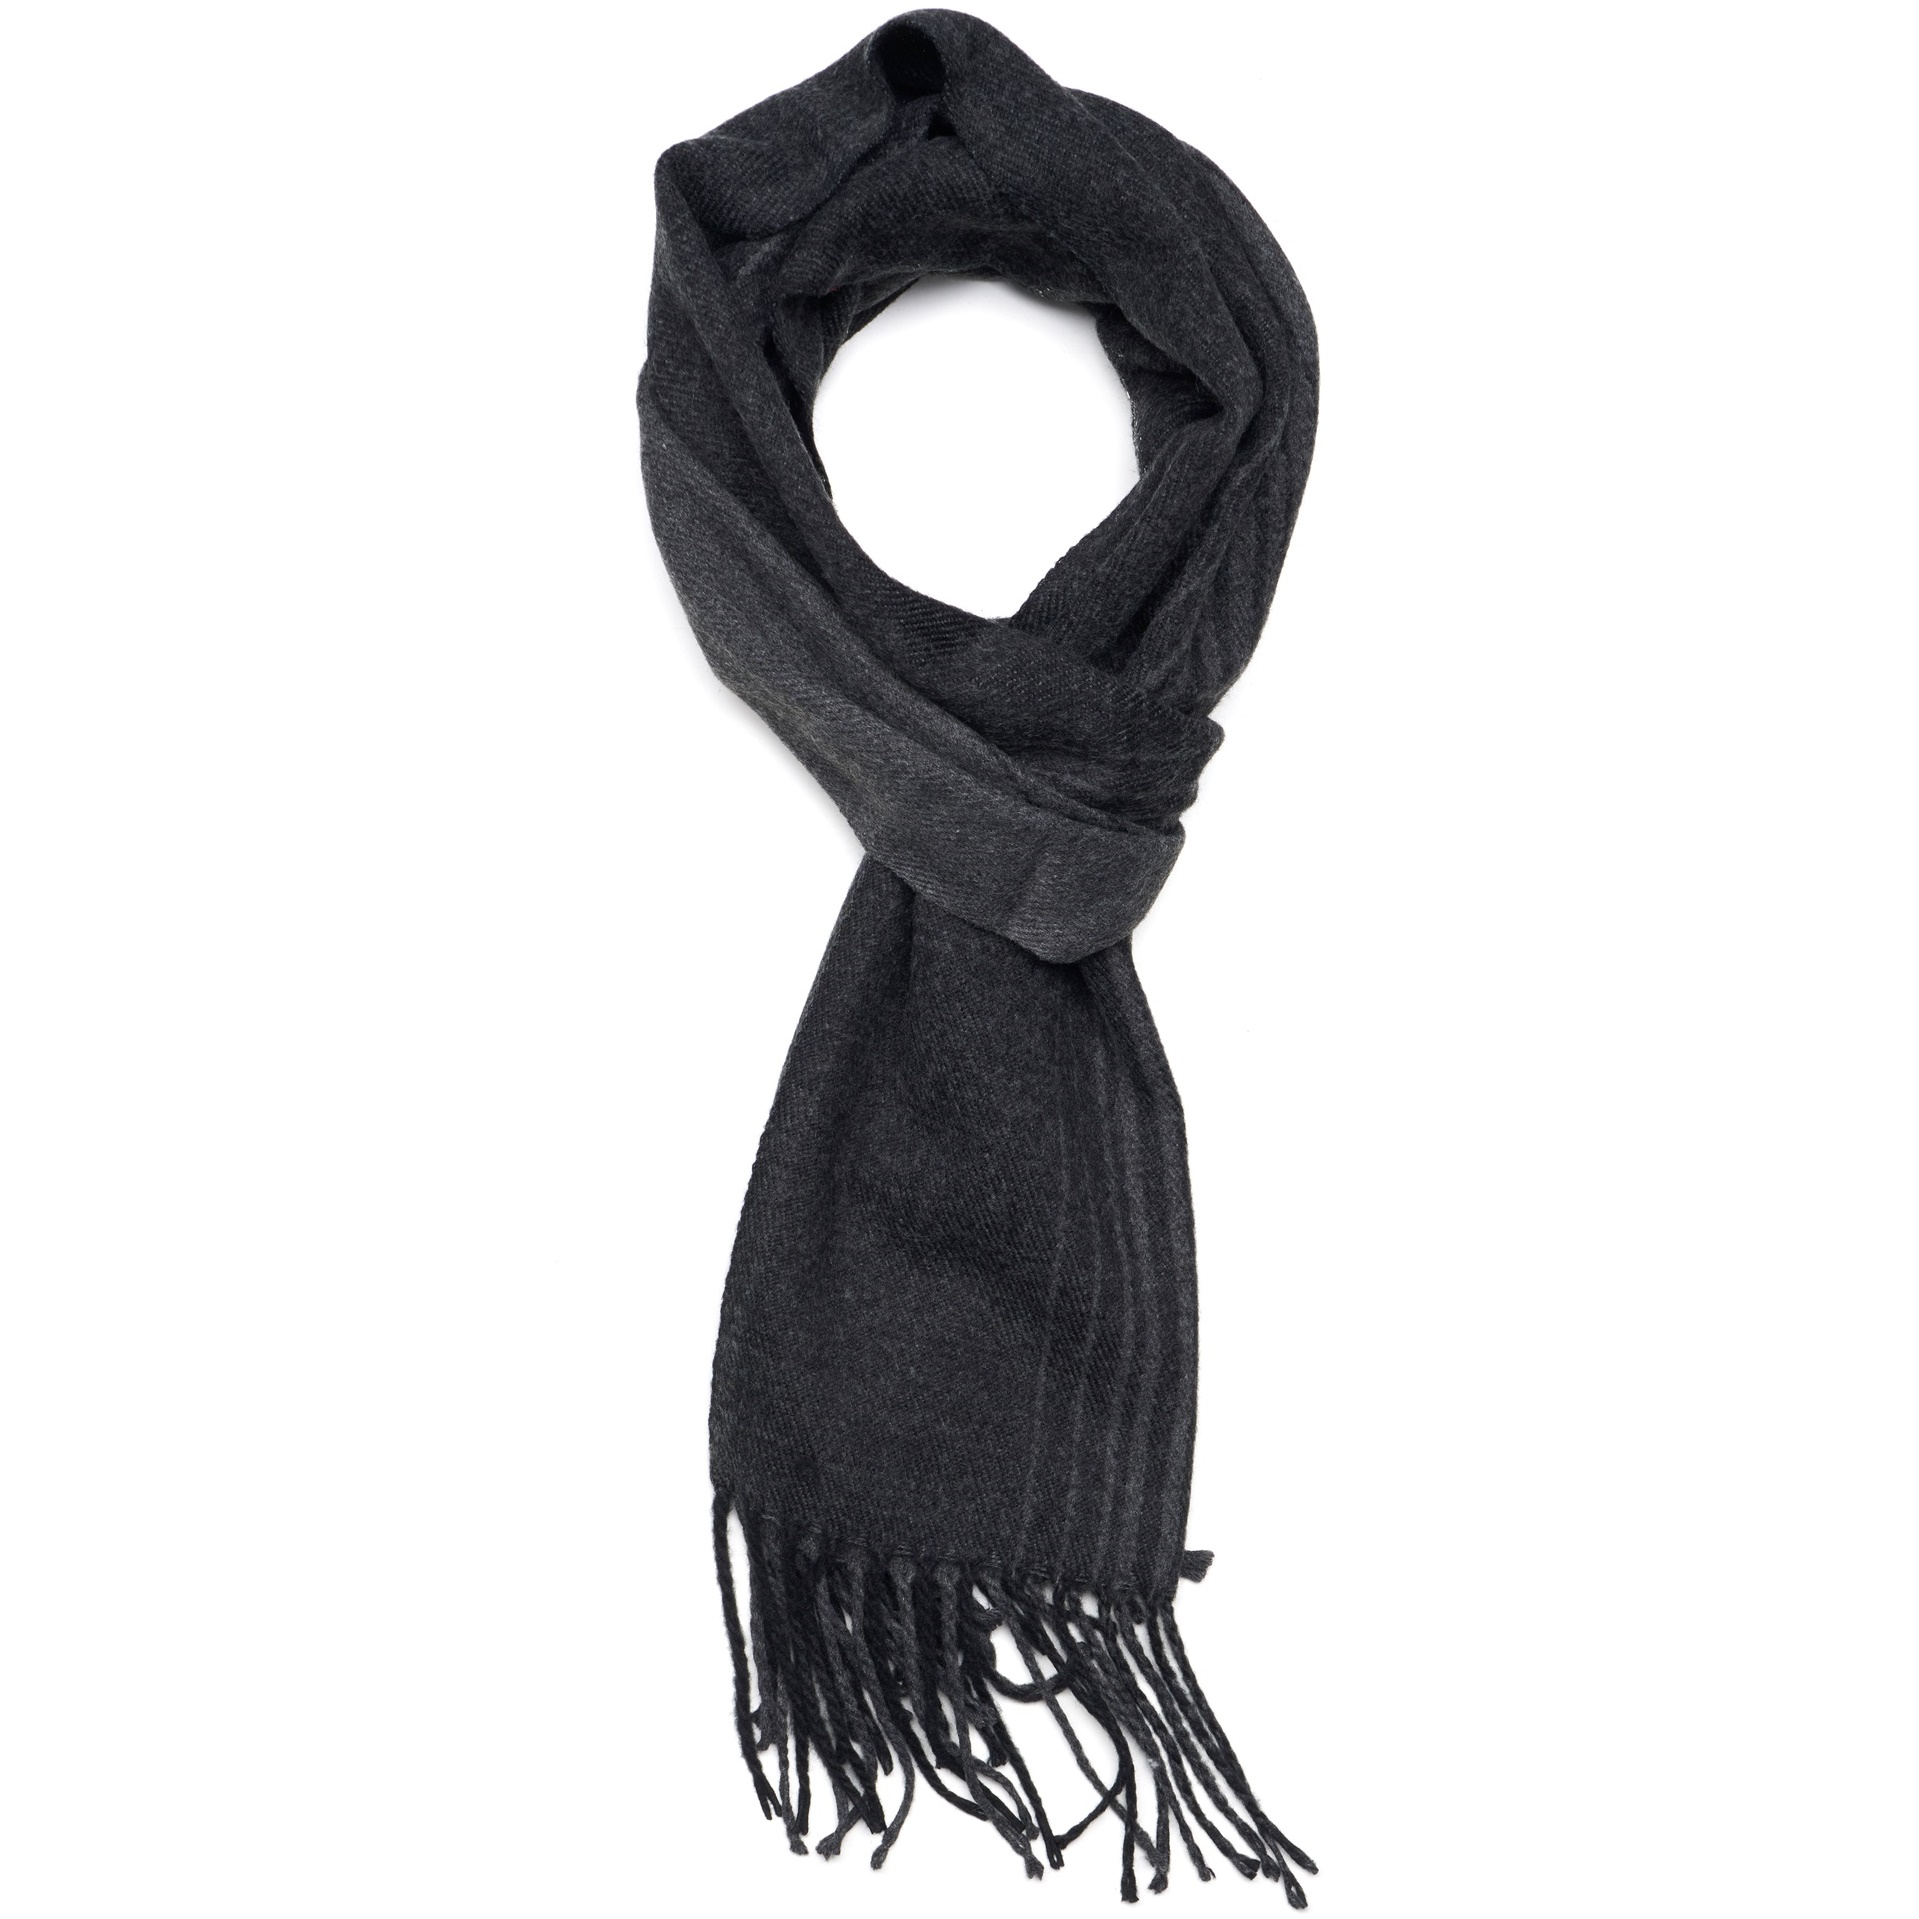 Hammer-Anvil-Mens-Plaid-Striped-Scarf-Womens-Winter-Scarves-Cashmere-Soft-Feel thumbnail 24